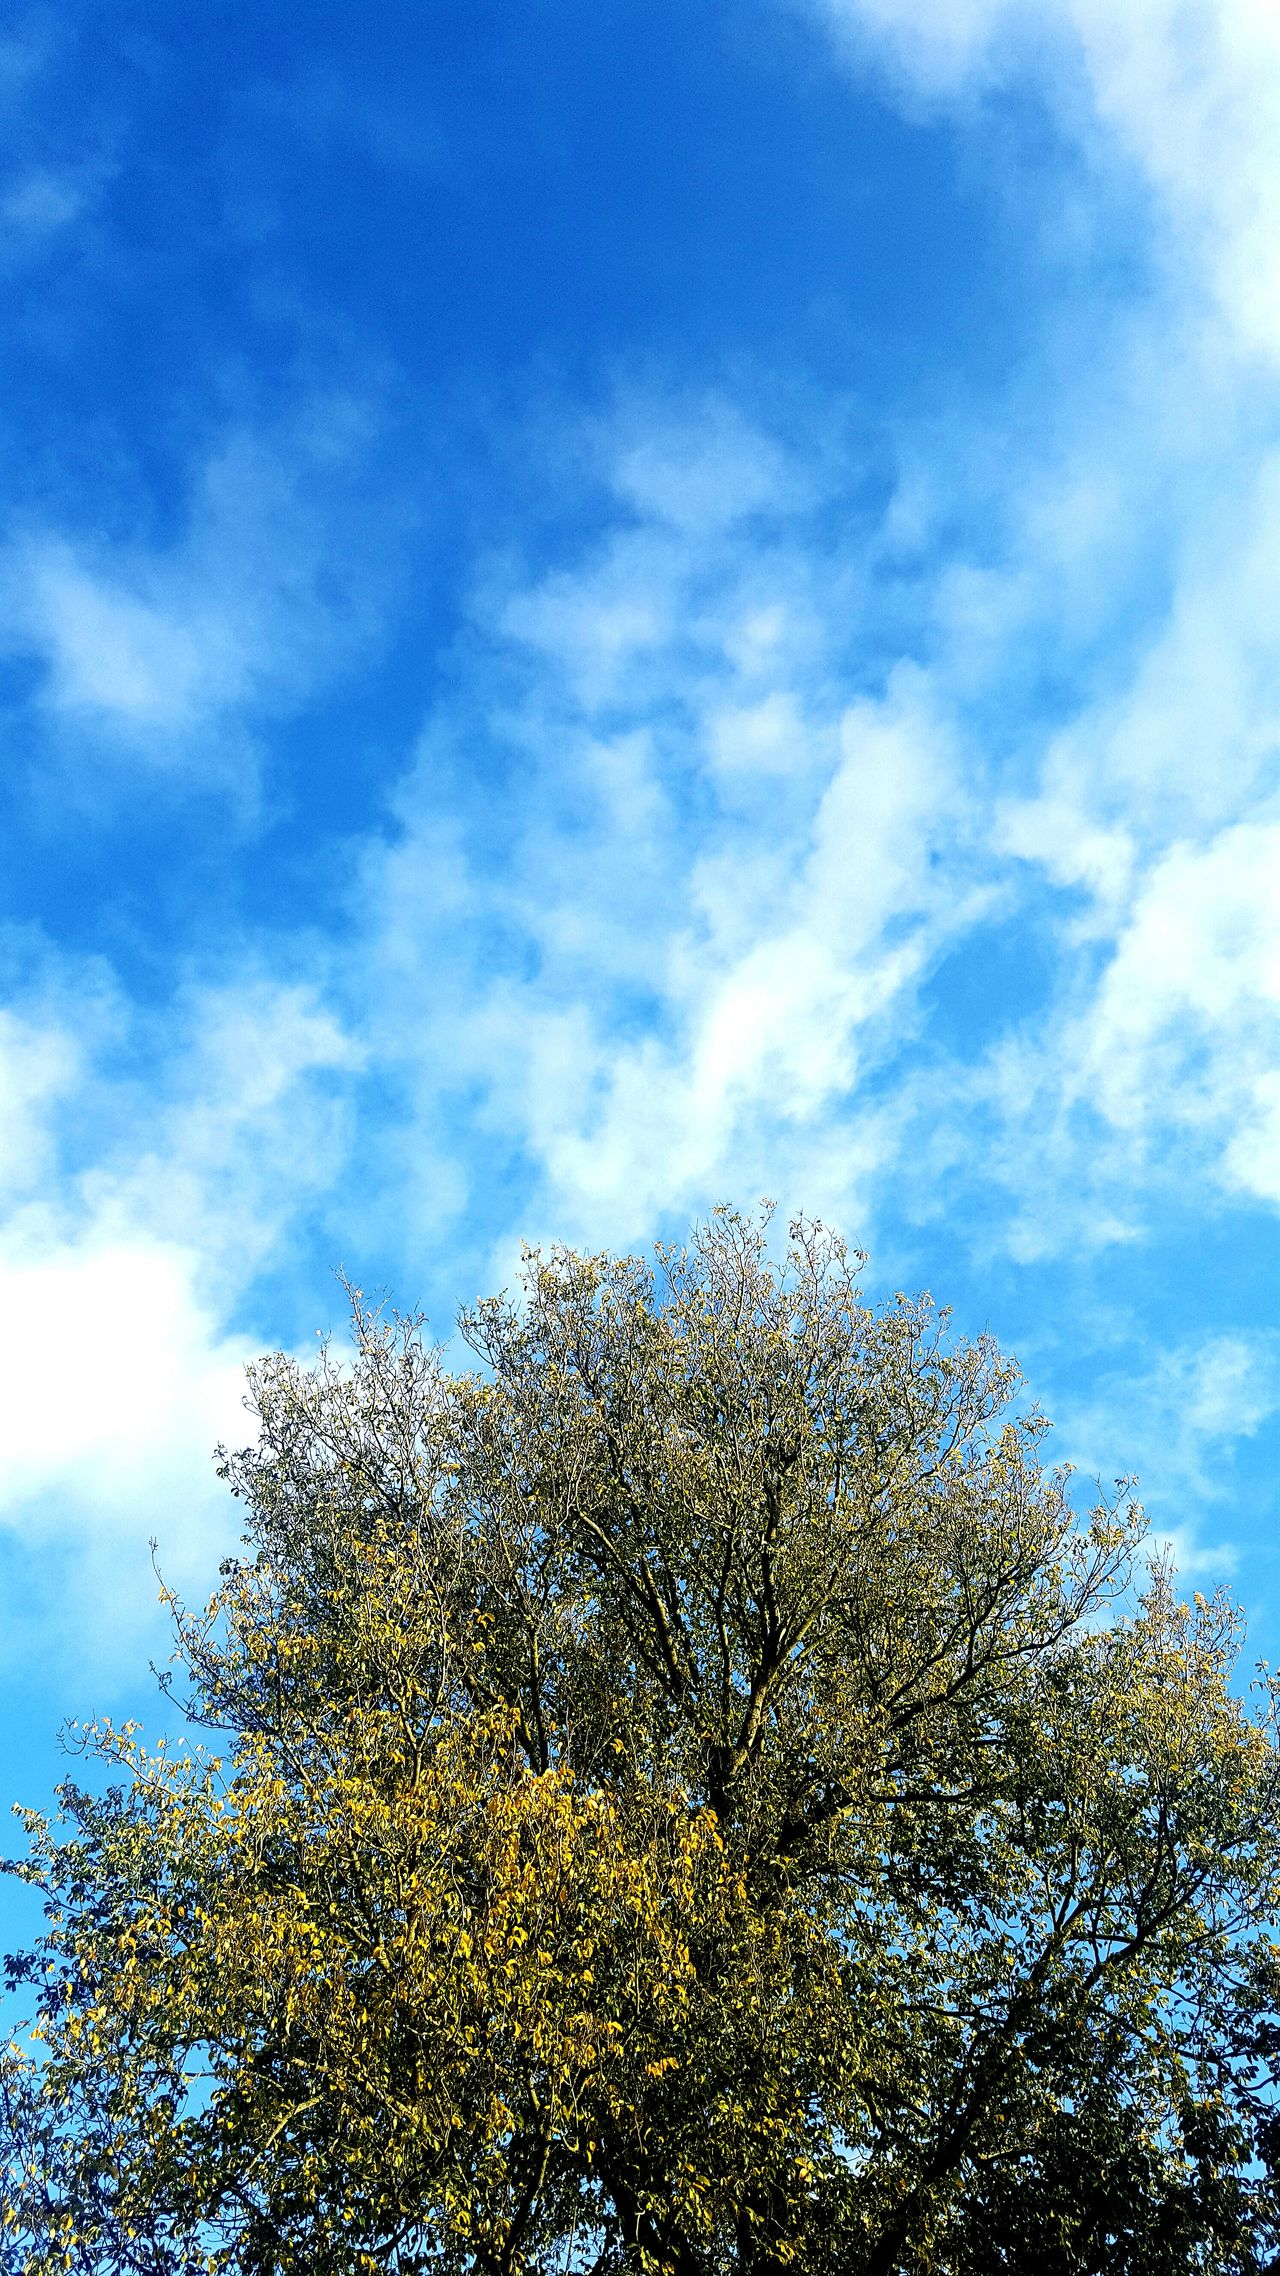 Tree Sky Blue No People Nature Outdoors Beauty In Nature Day Cold Herfst Netherlands Selfmade Pic Netherlands Nature Weather Photography Weather